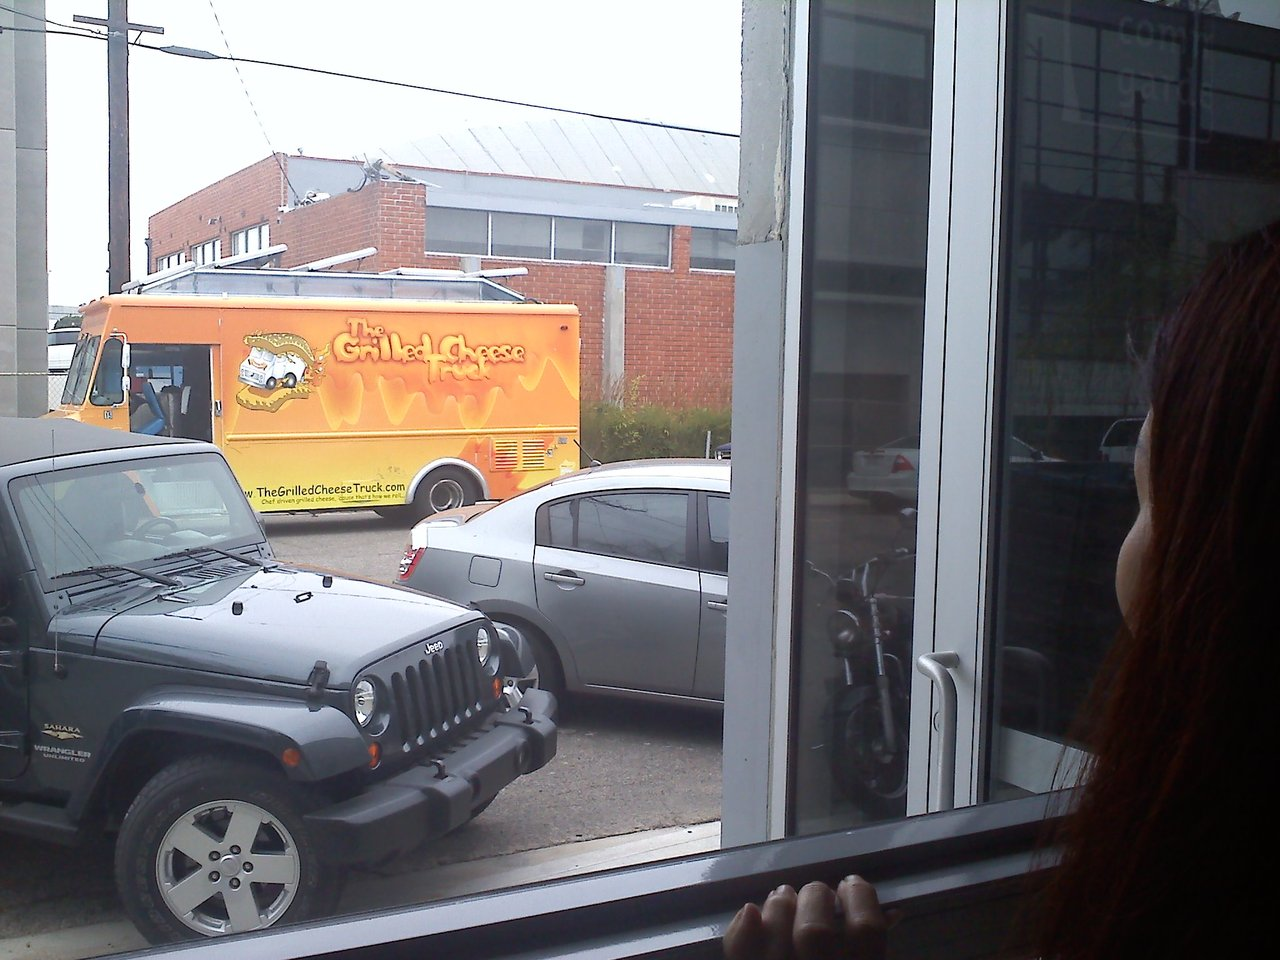 DAMN YOU GRILLED CHEESE.    idigress :     Although we have proof it stopped across the street, the grilled cheese truck took off before we could sample the wares. :(